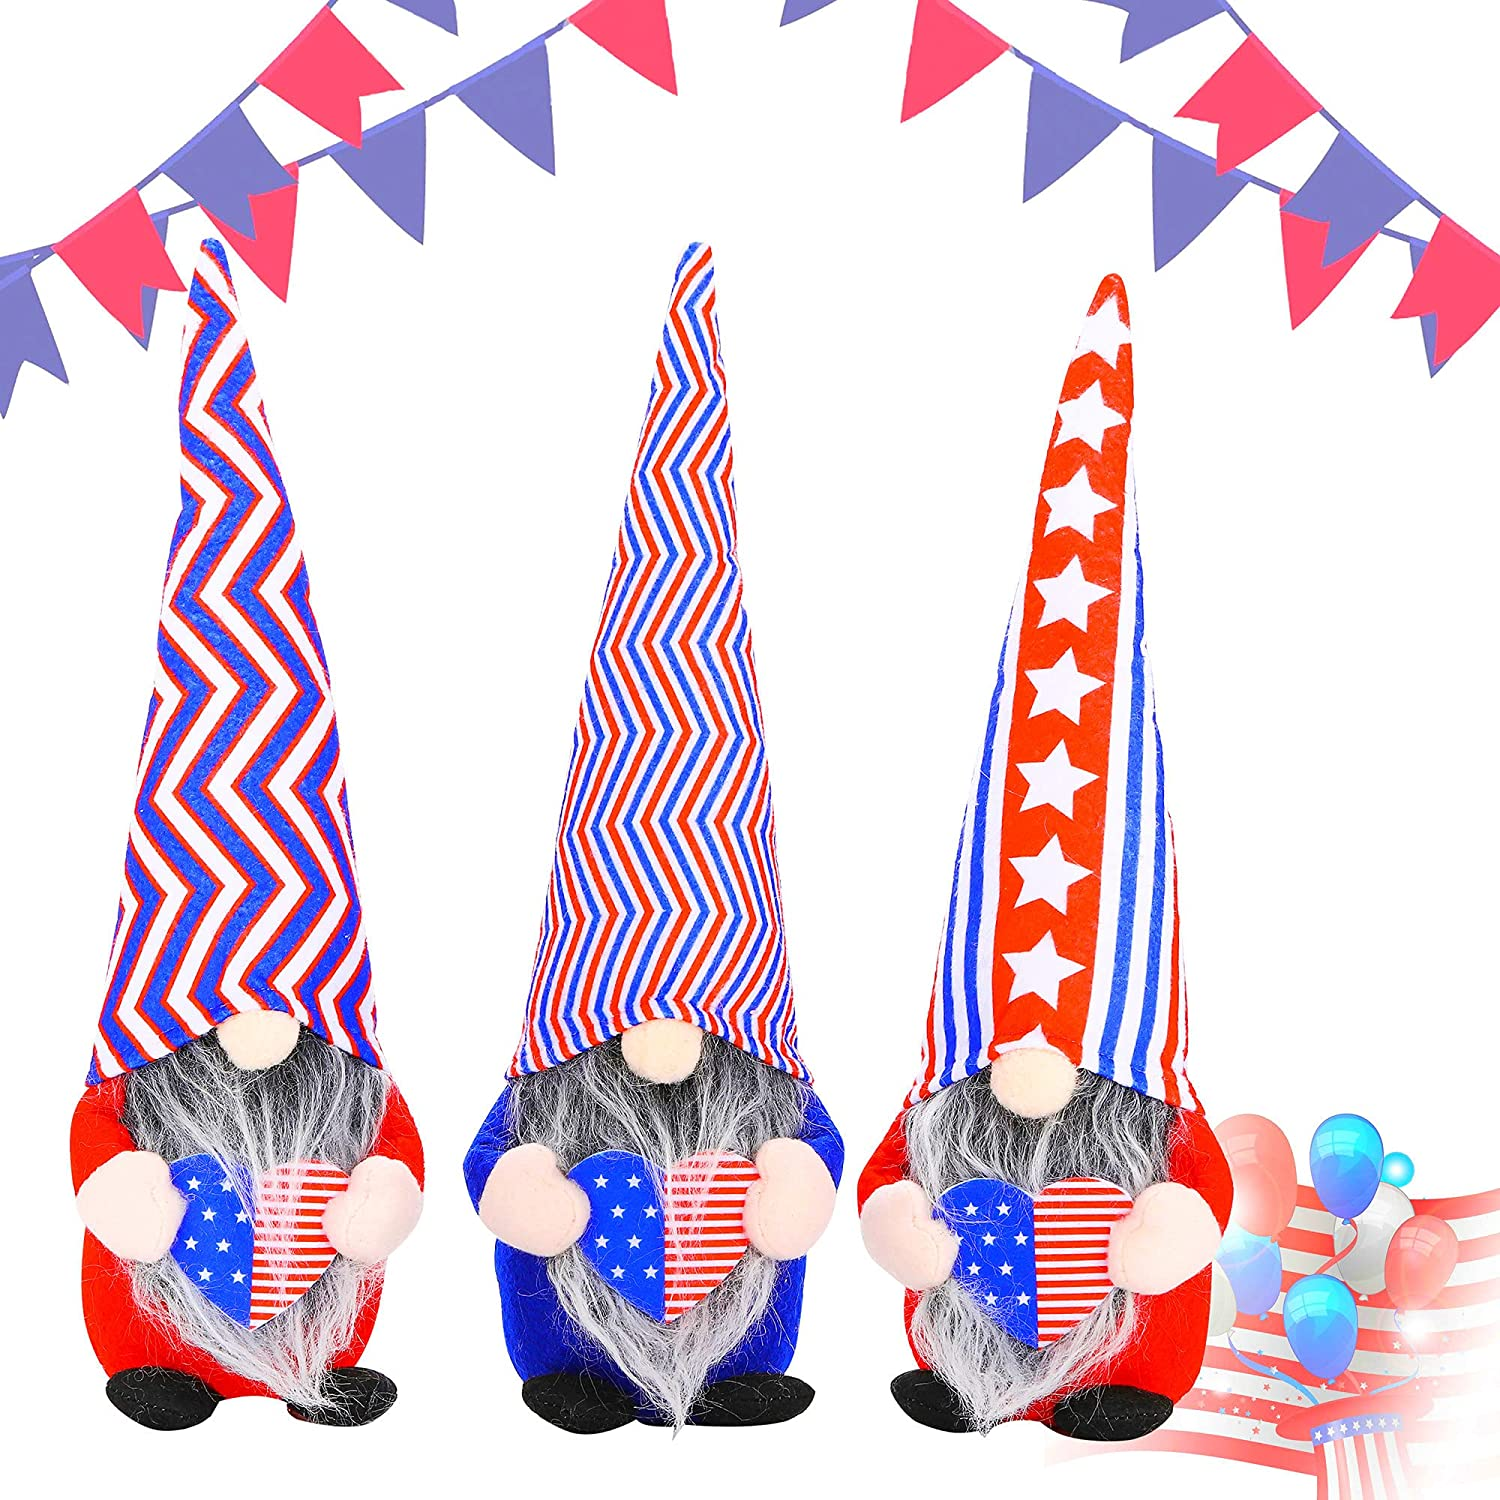 Patriotic Gnomes 4th of July Independence Day Decorations, Scandinavian Gnomes Veterans Day Home Kitchen Table Tiered Tray Wall Decor Set of 3